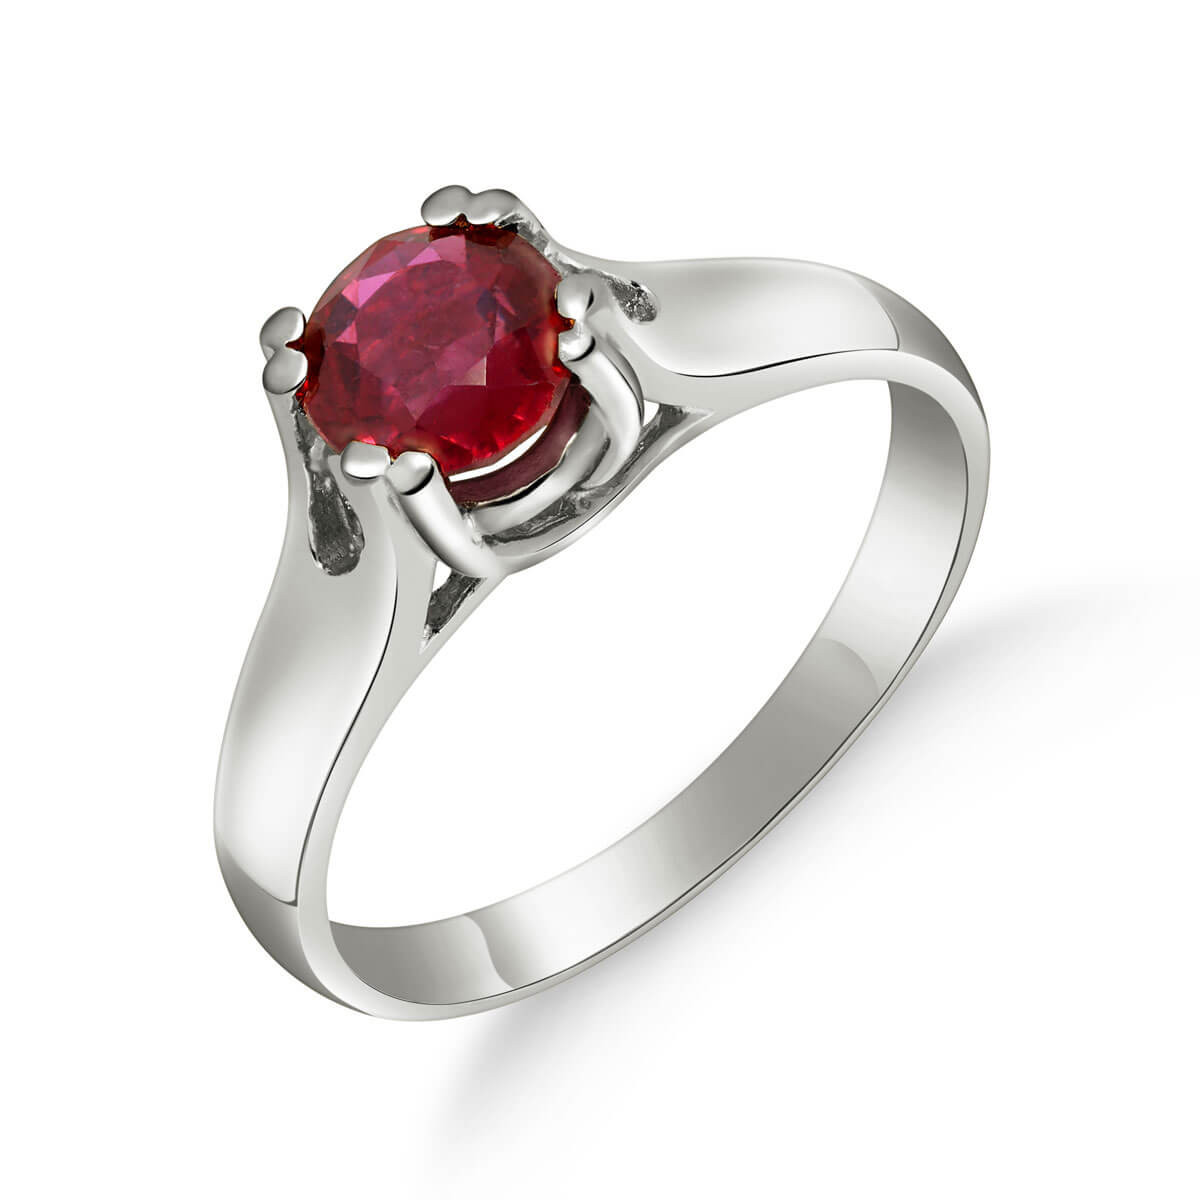 Ruby Solitaire Ring 1.35 ct in 9ct White Gold